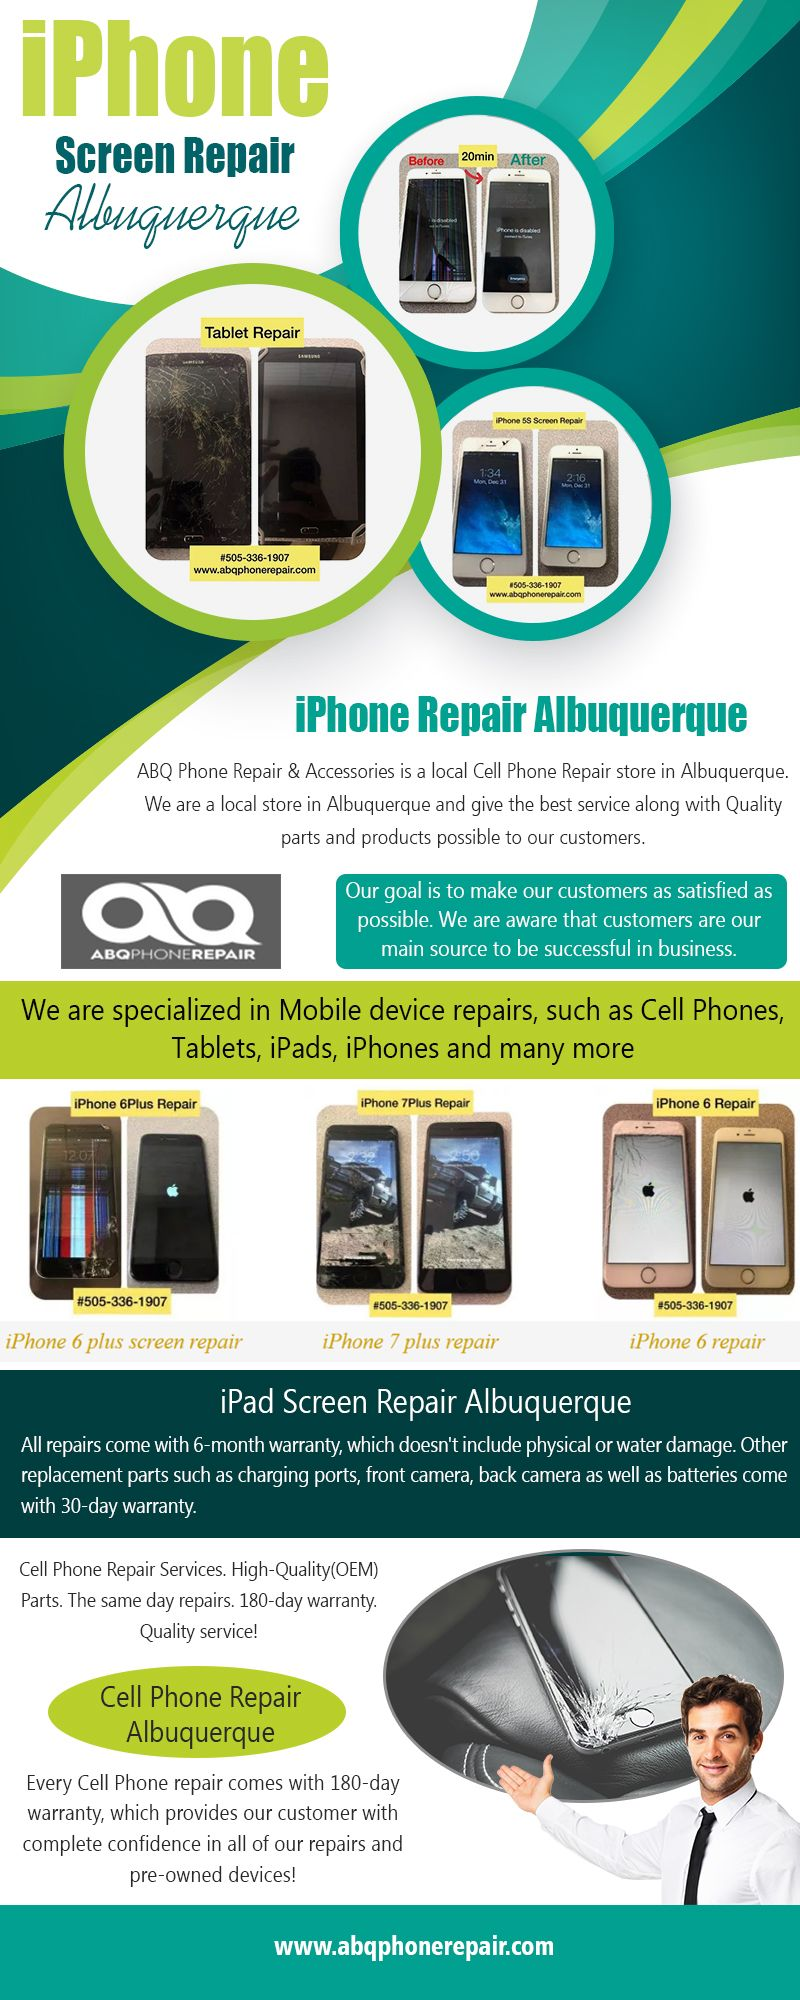 Cell Phone Repair Albuquerque >> Pin By Abq Phone On Phone Repair Albuquerque Iphone Repair Phone